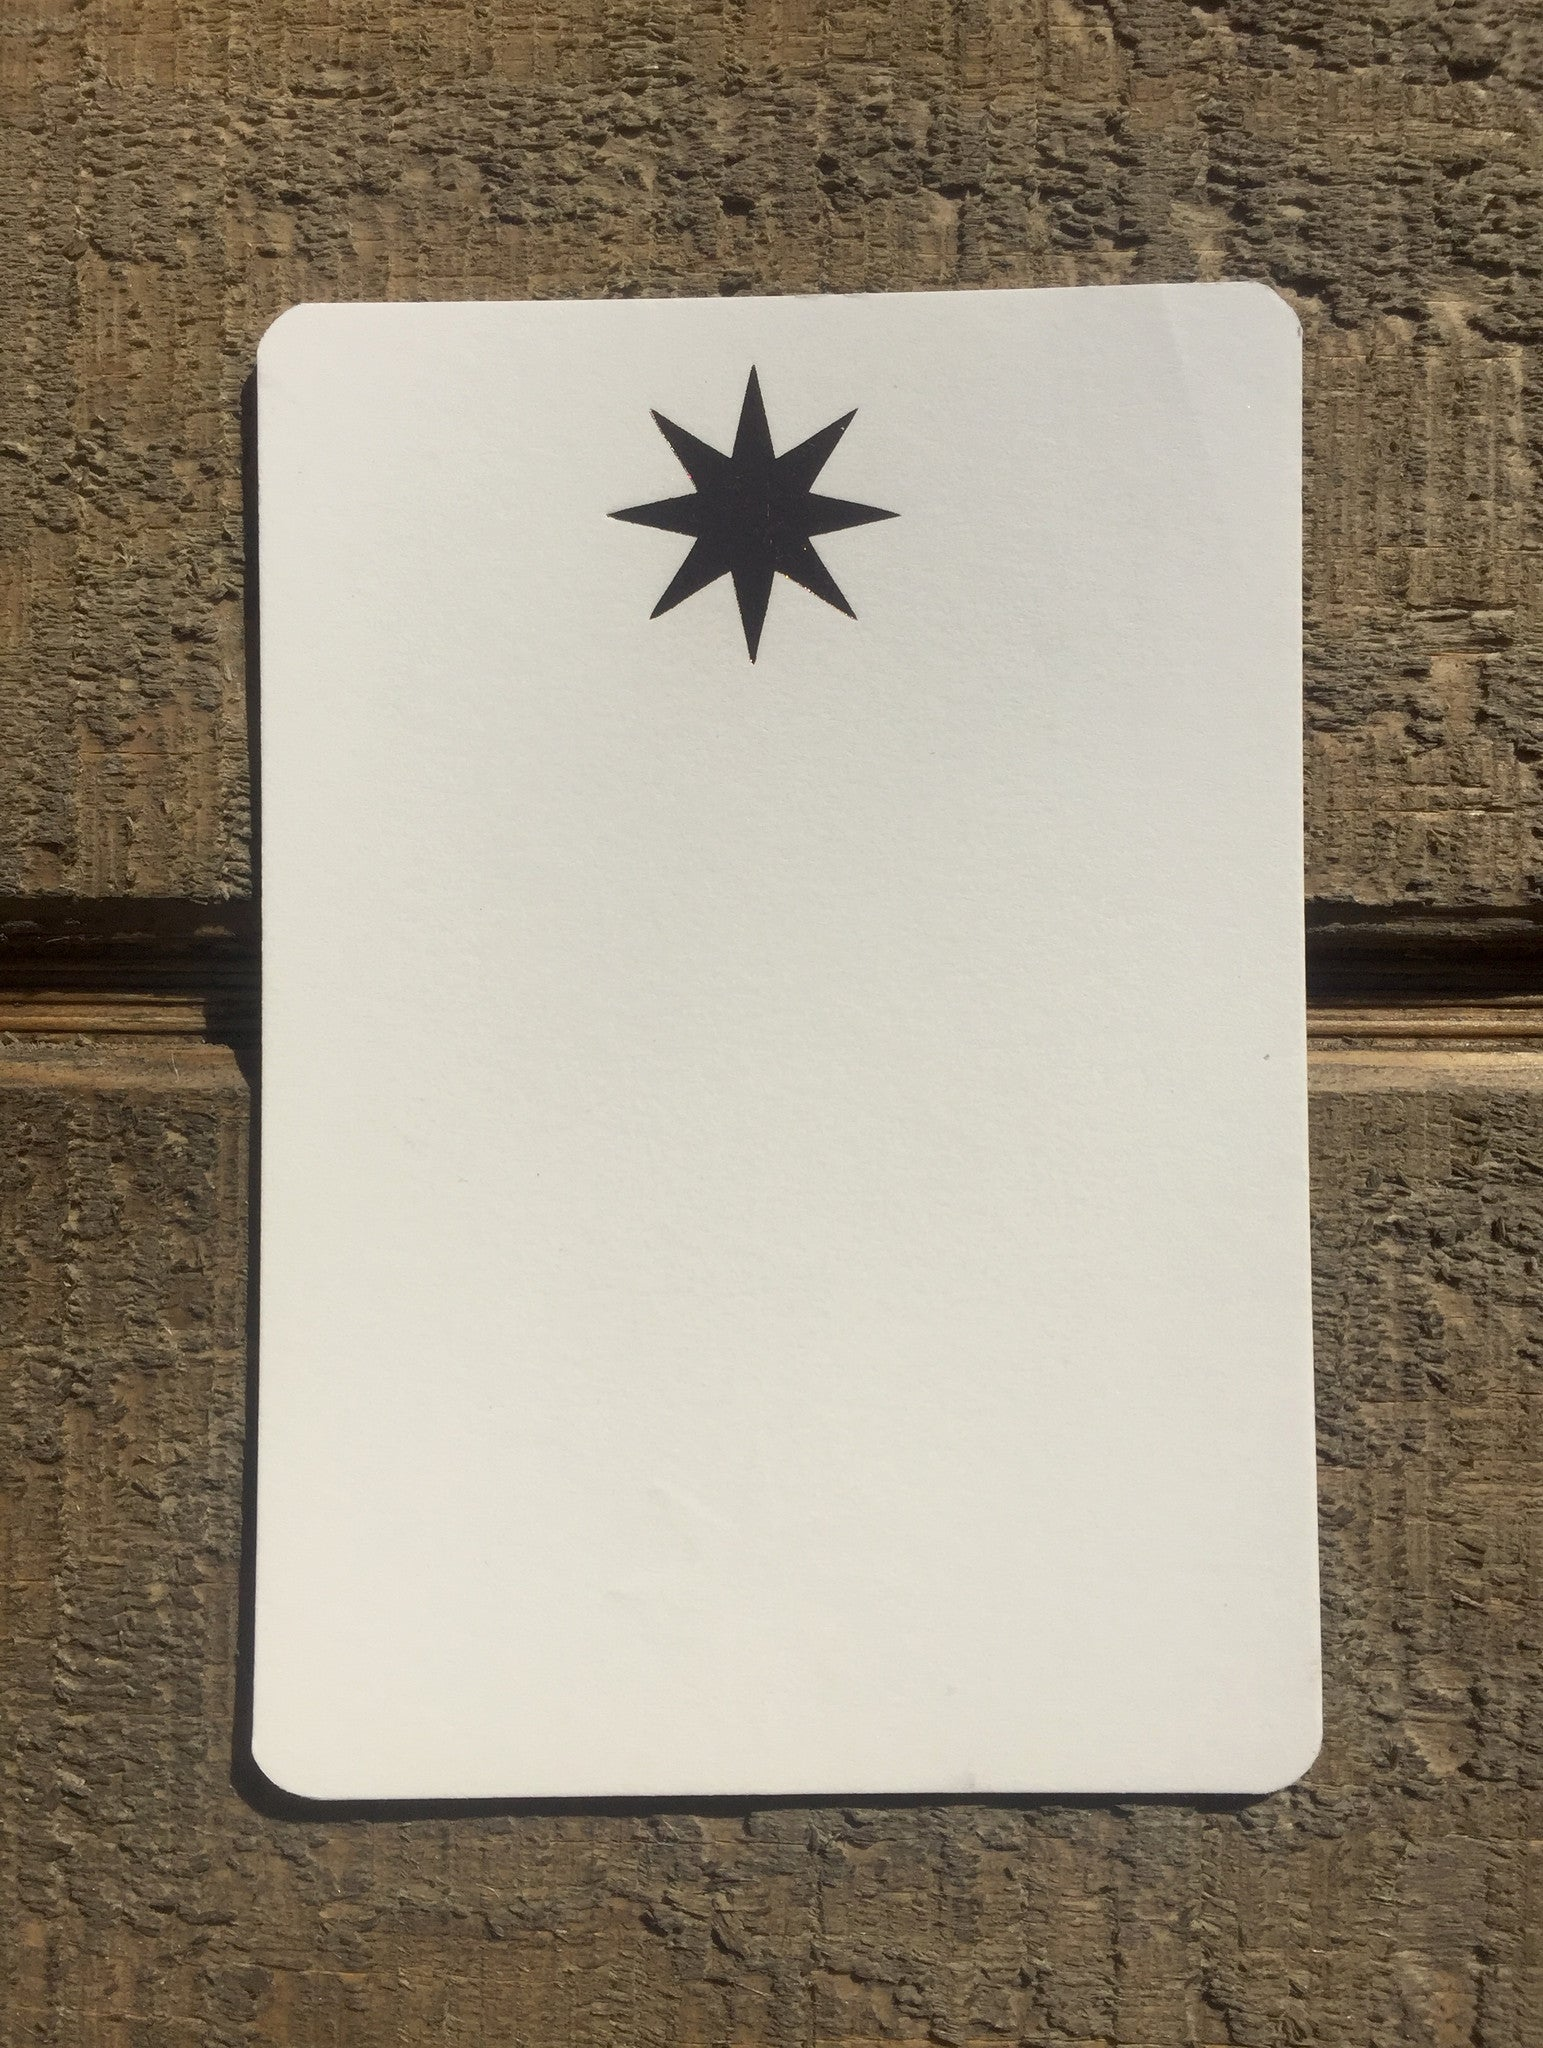 Foil Pressed Starburst Card